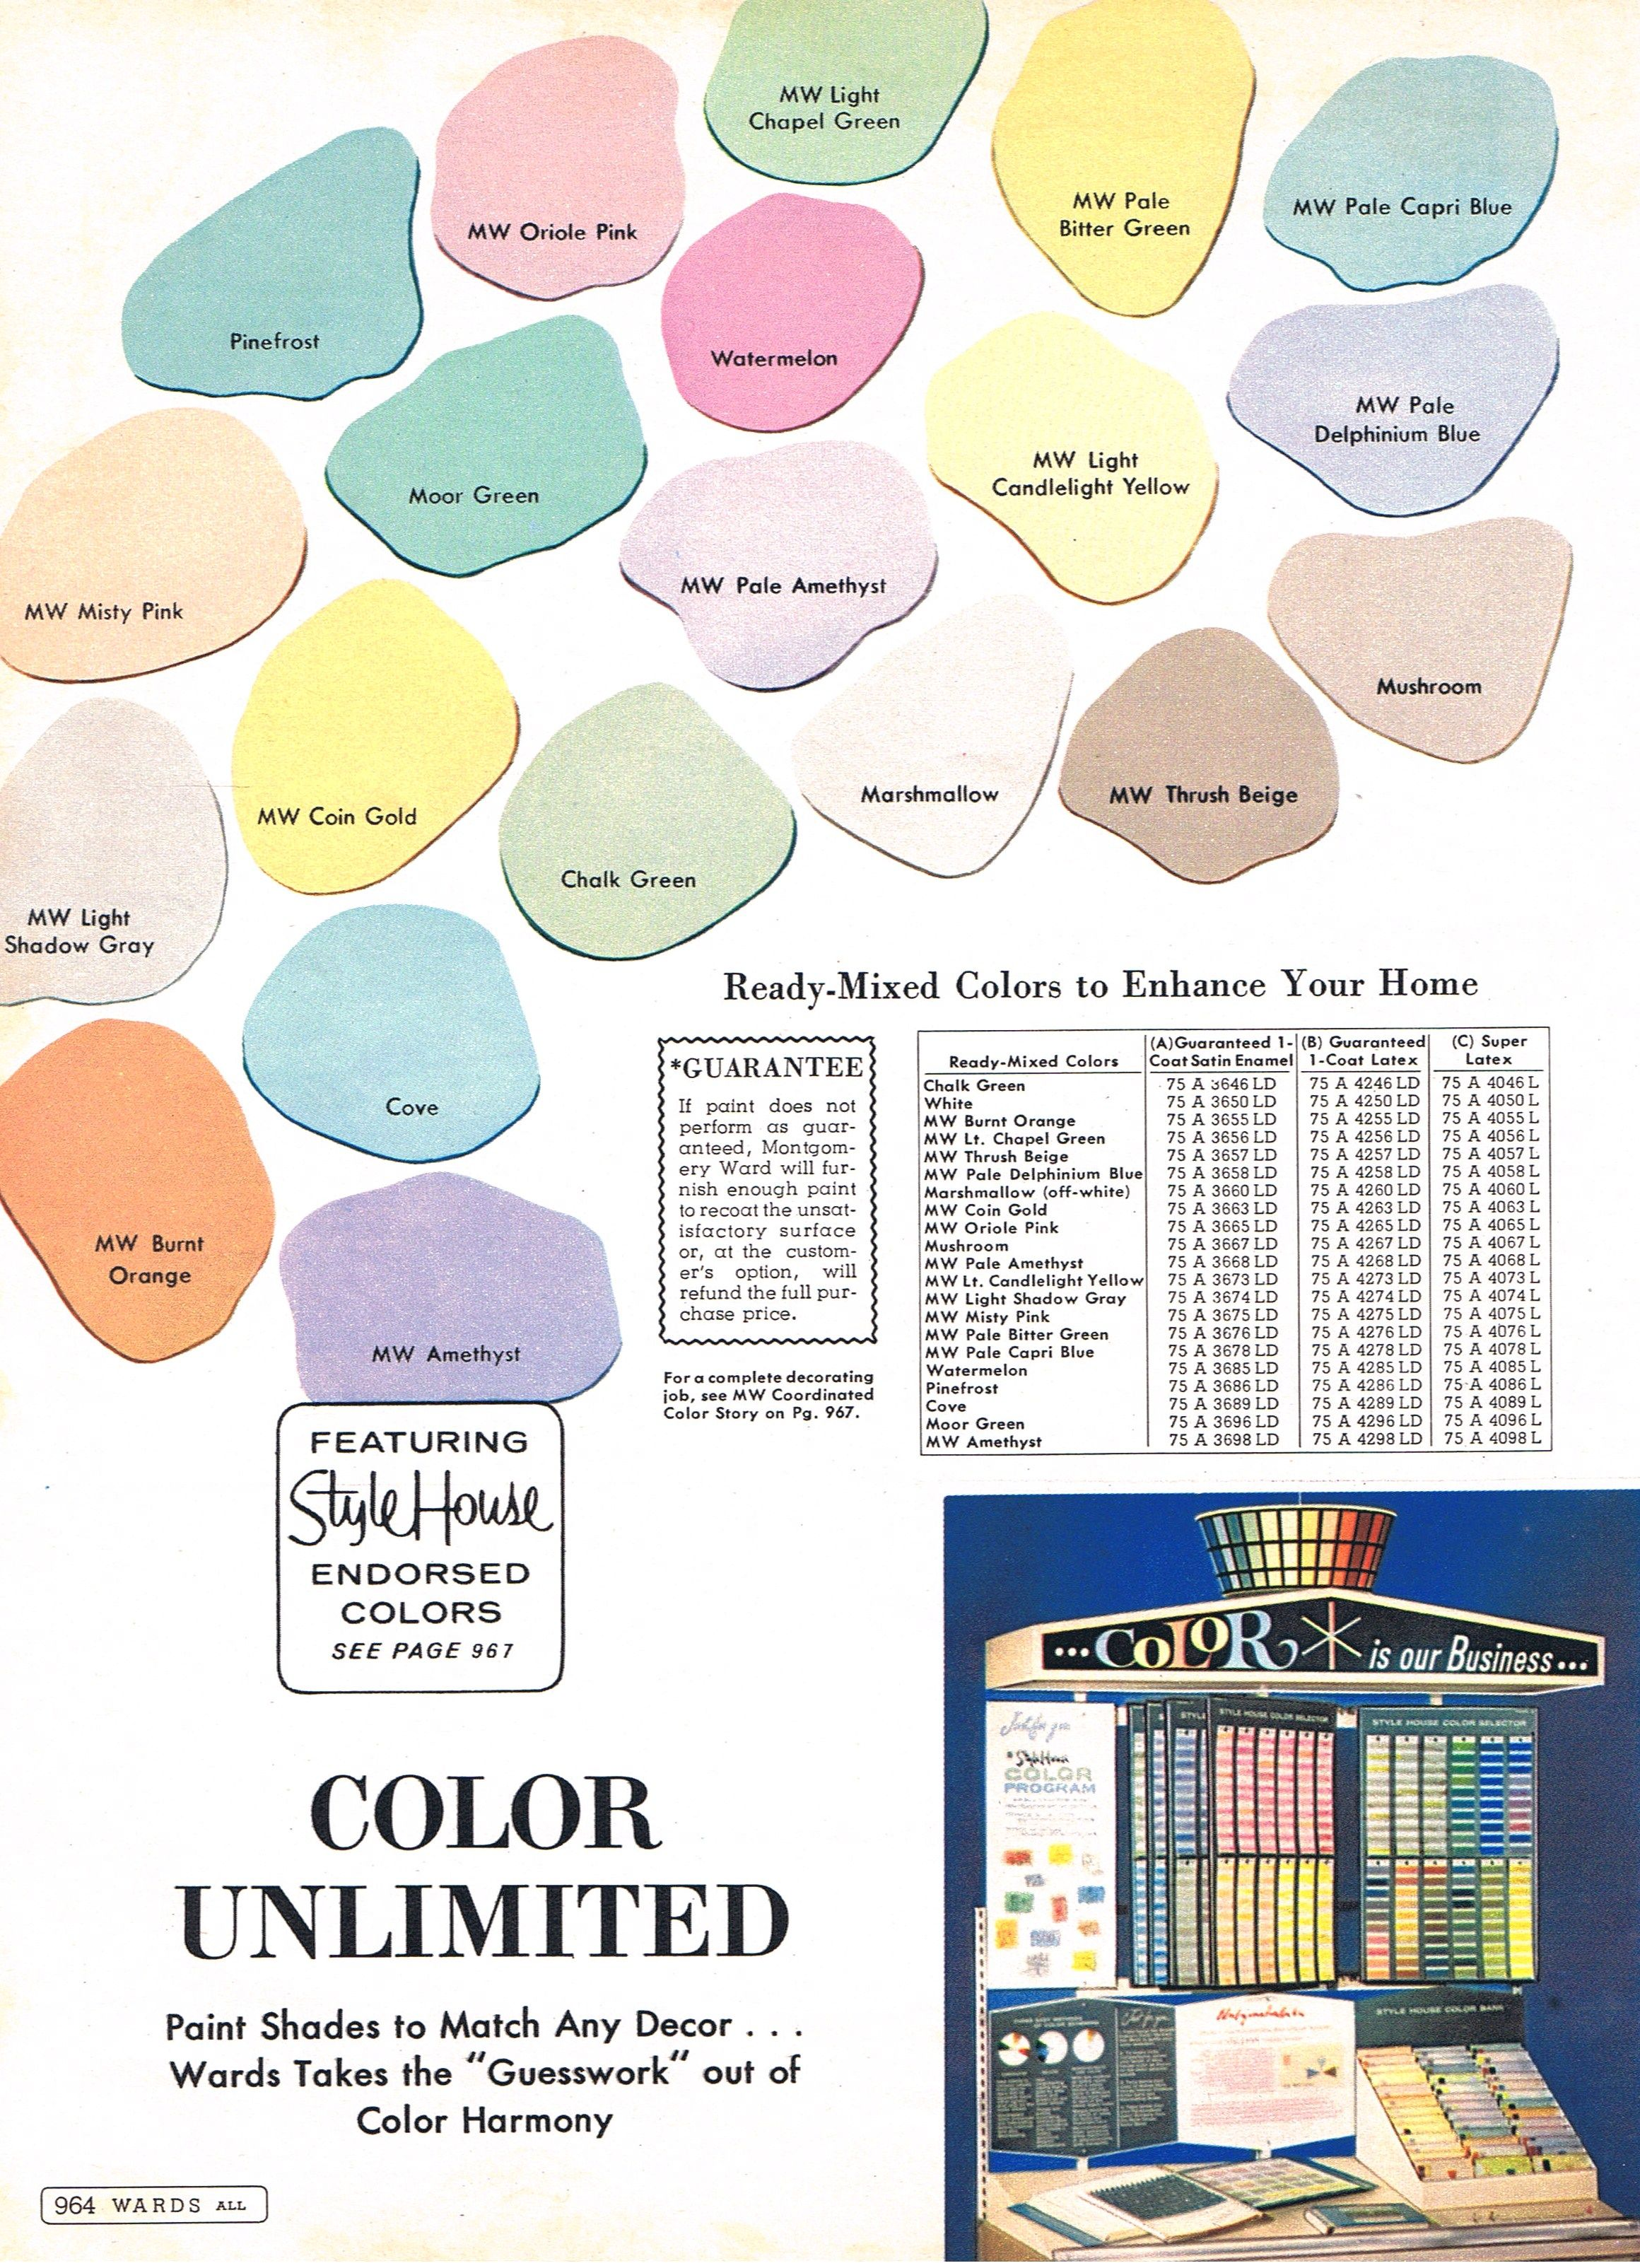 Mcm Paint Colors Montgomery Ward 1964 The Mid Century